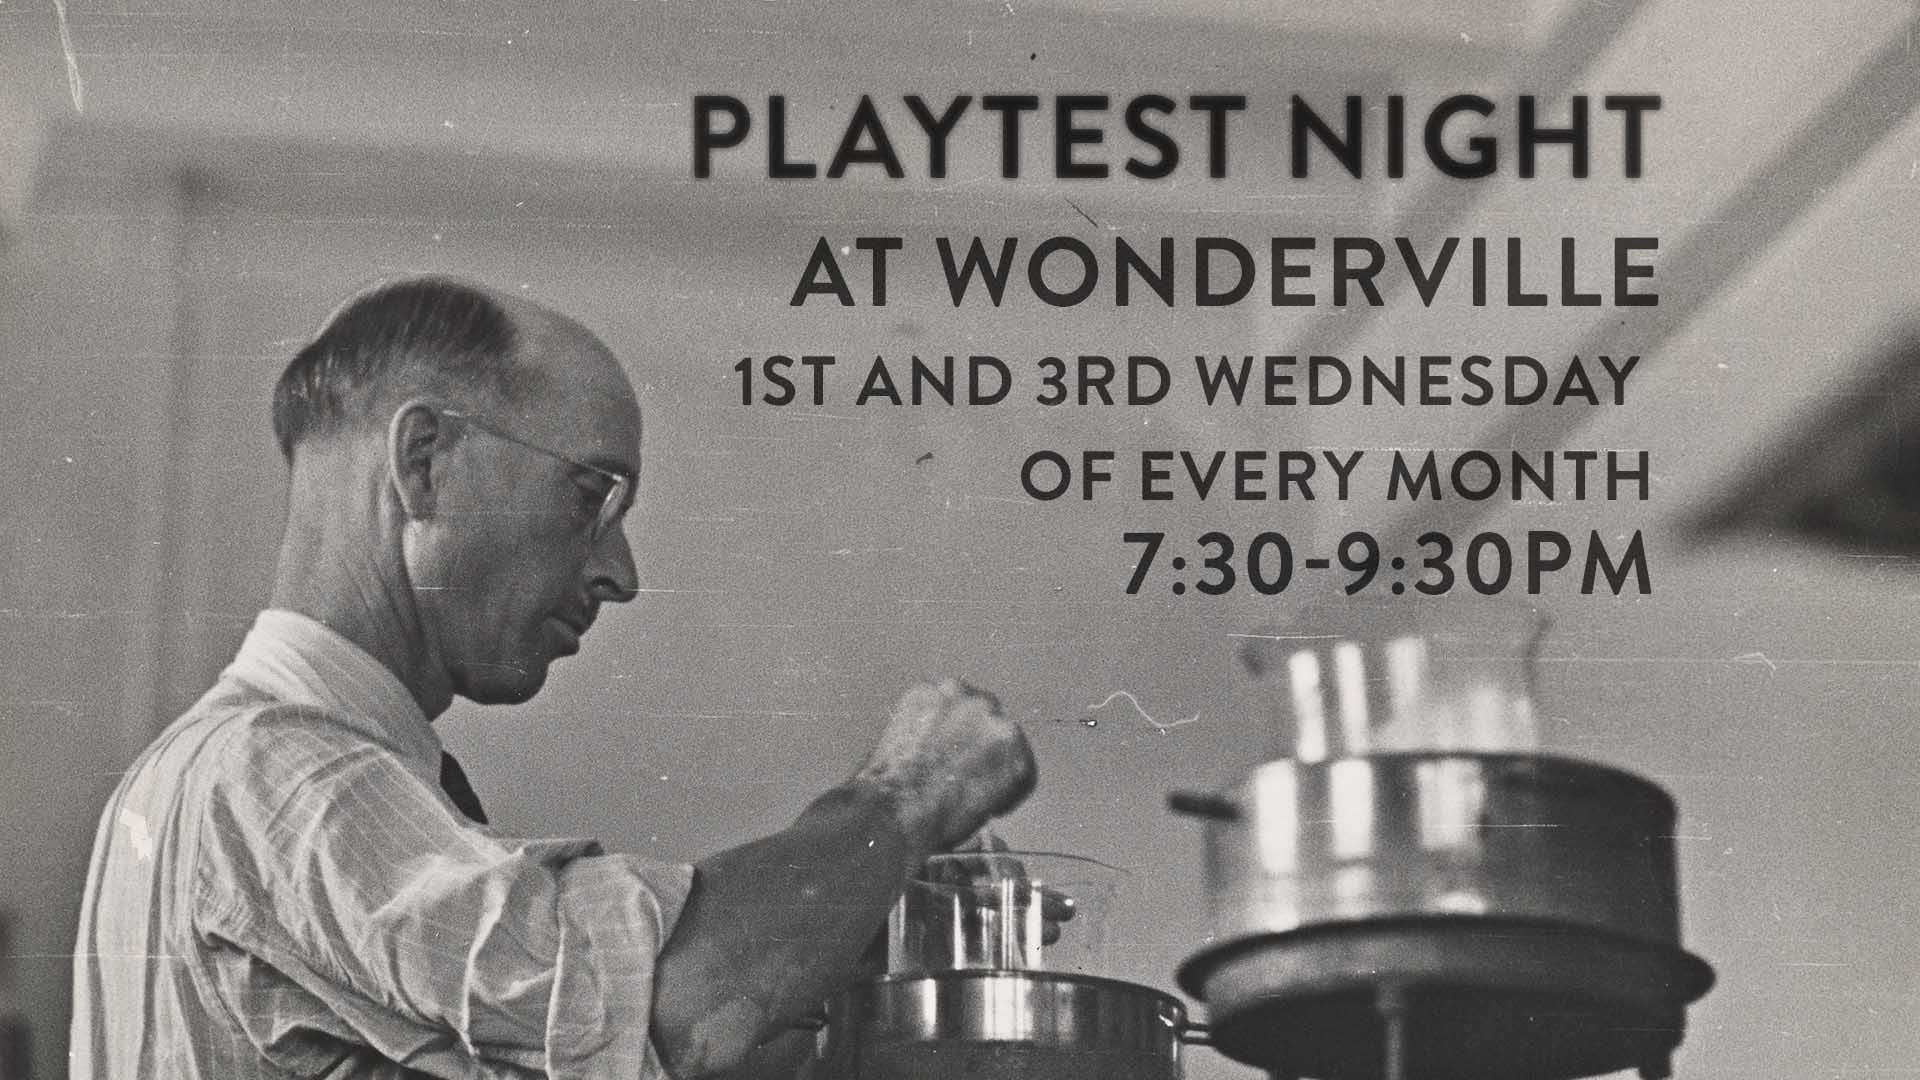 RSVP:  https://withfriends.co/event/2258051/playtest_night